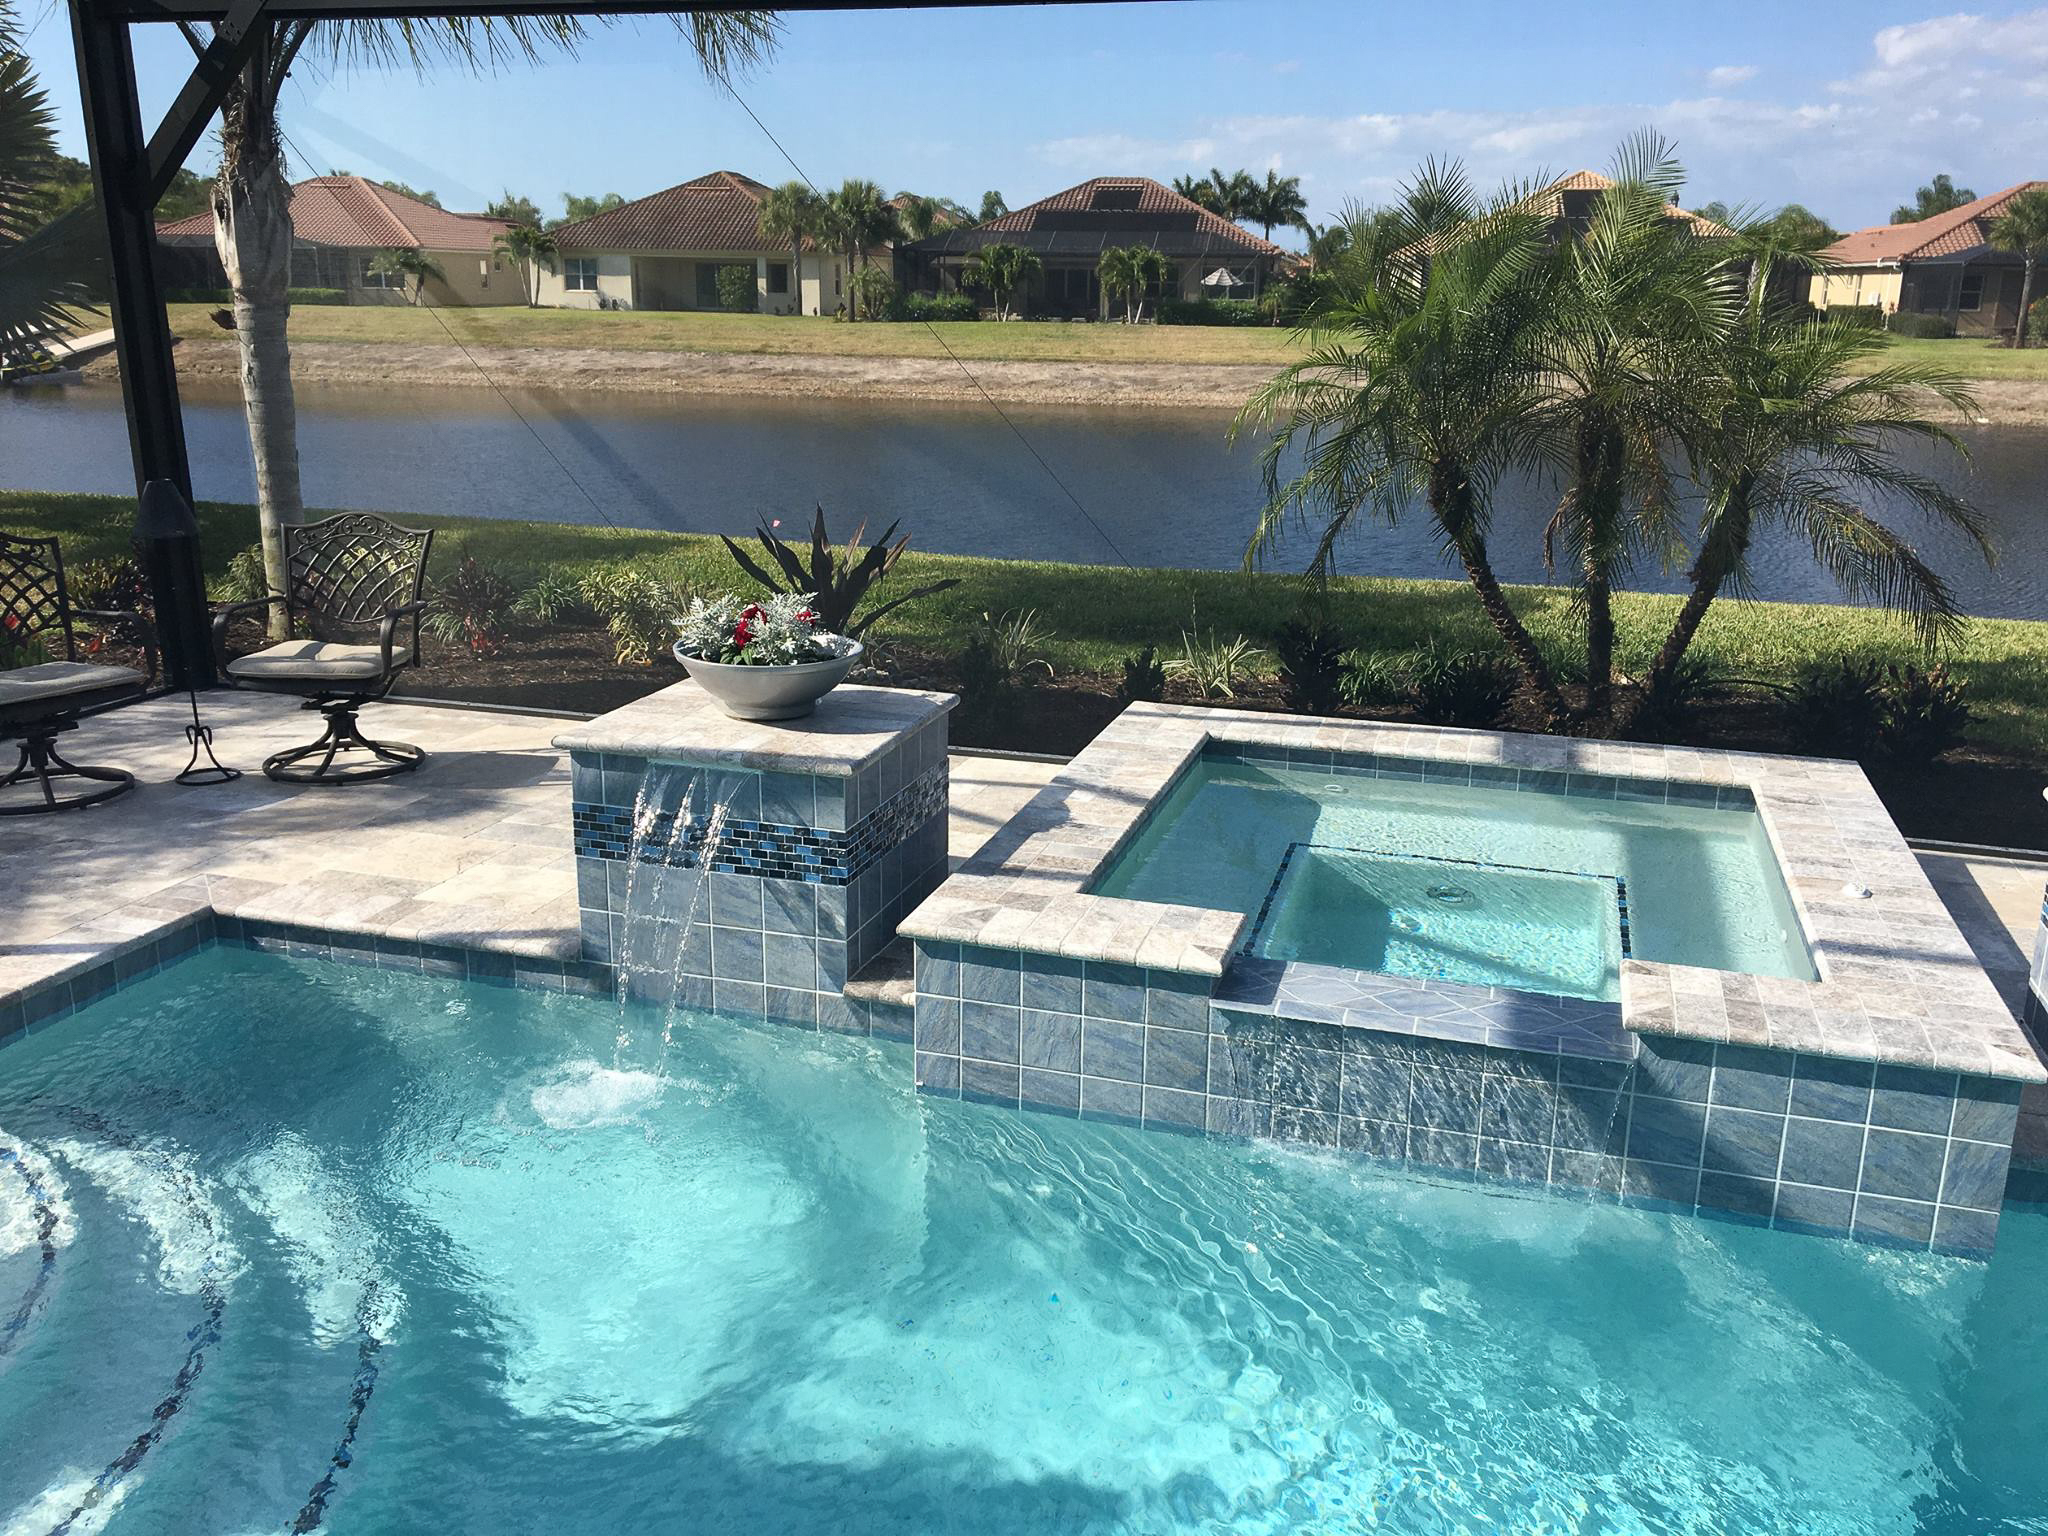 The quarry naples florida pinnacle usa inc for Pool design naples fl